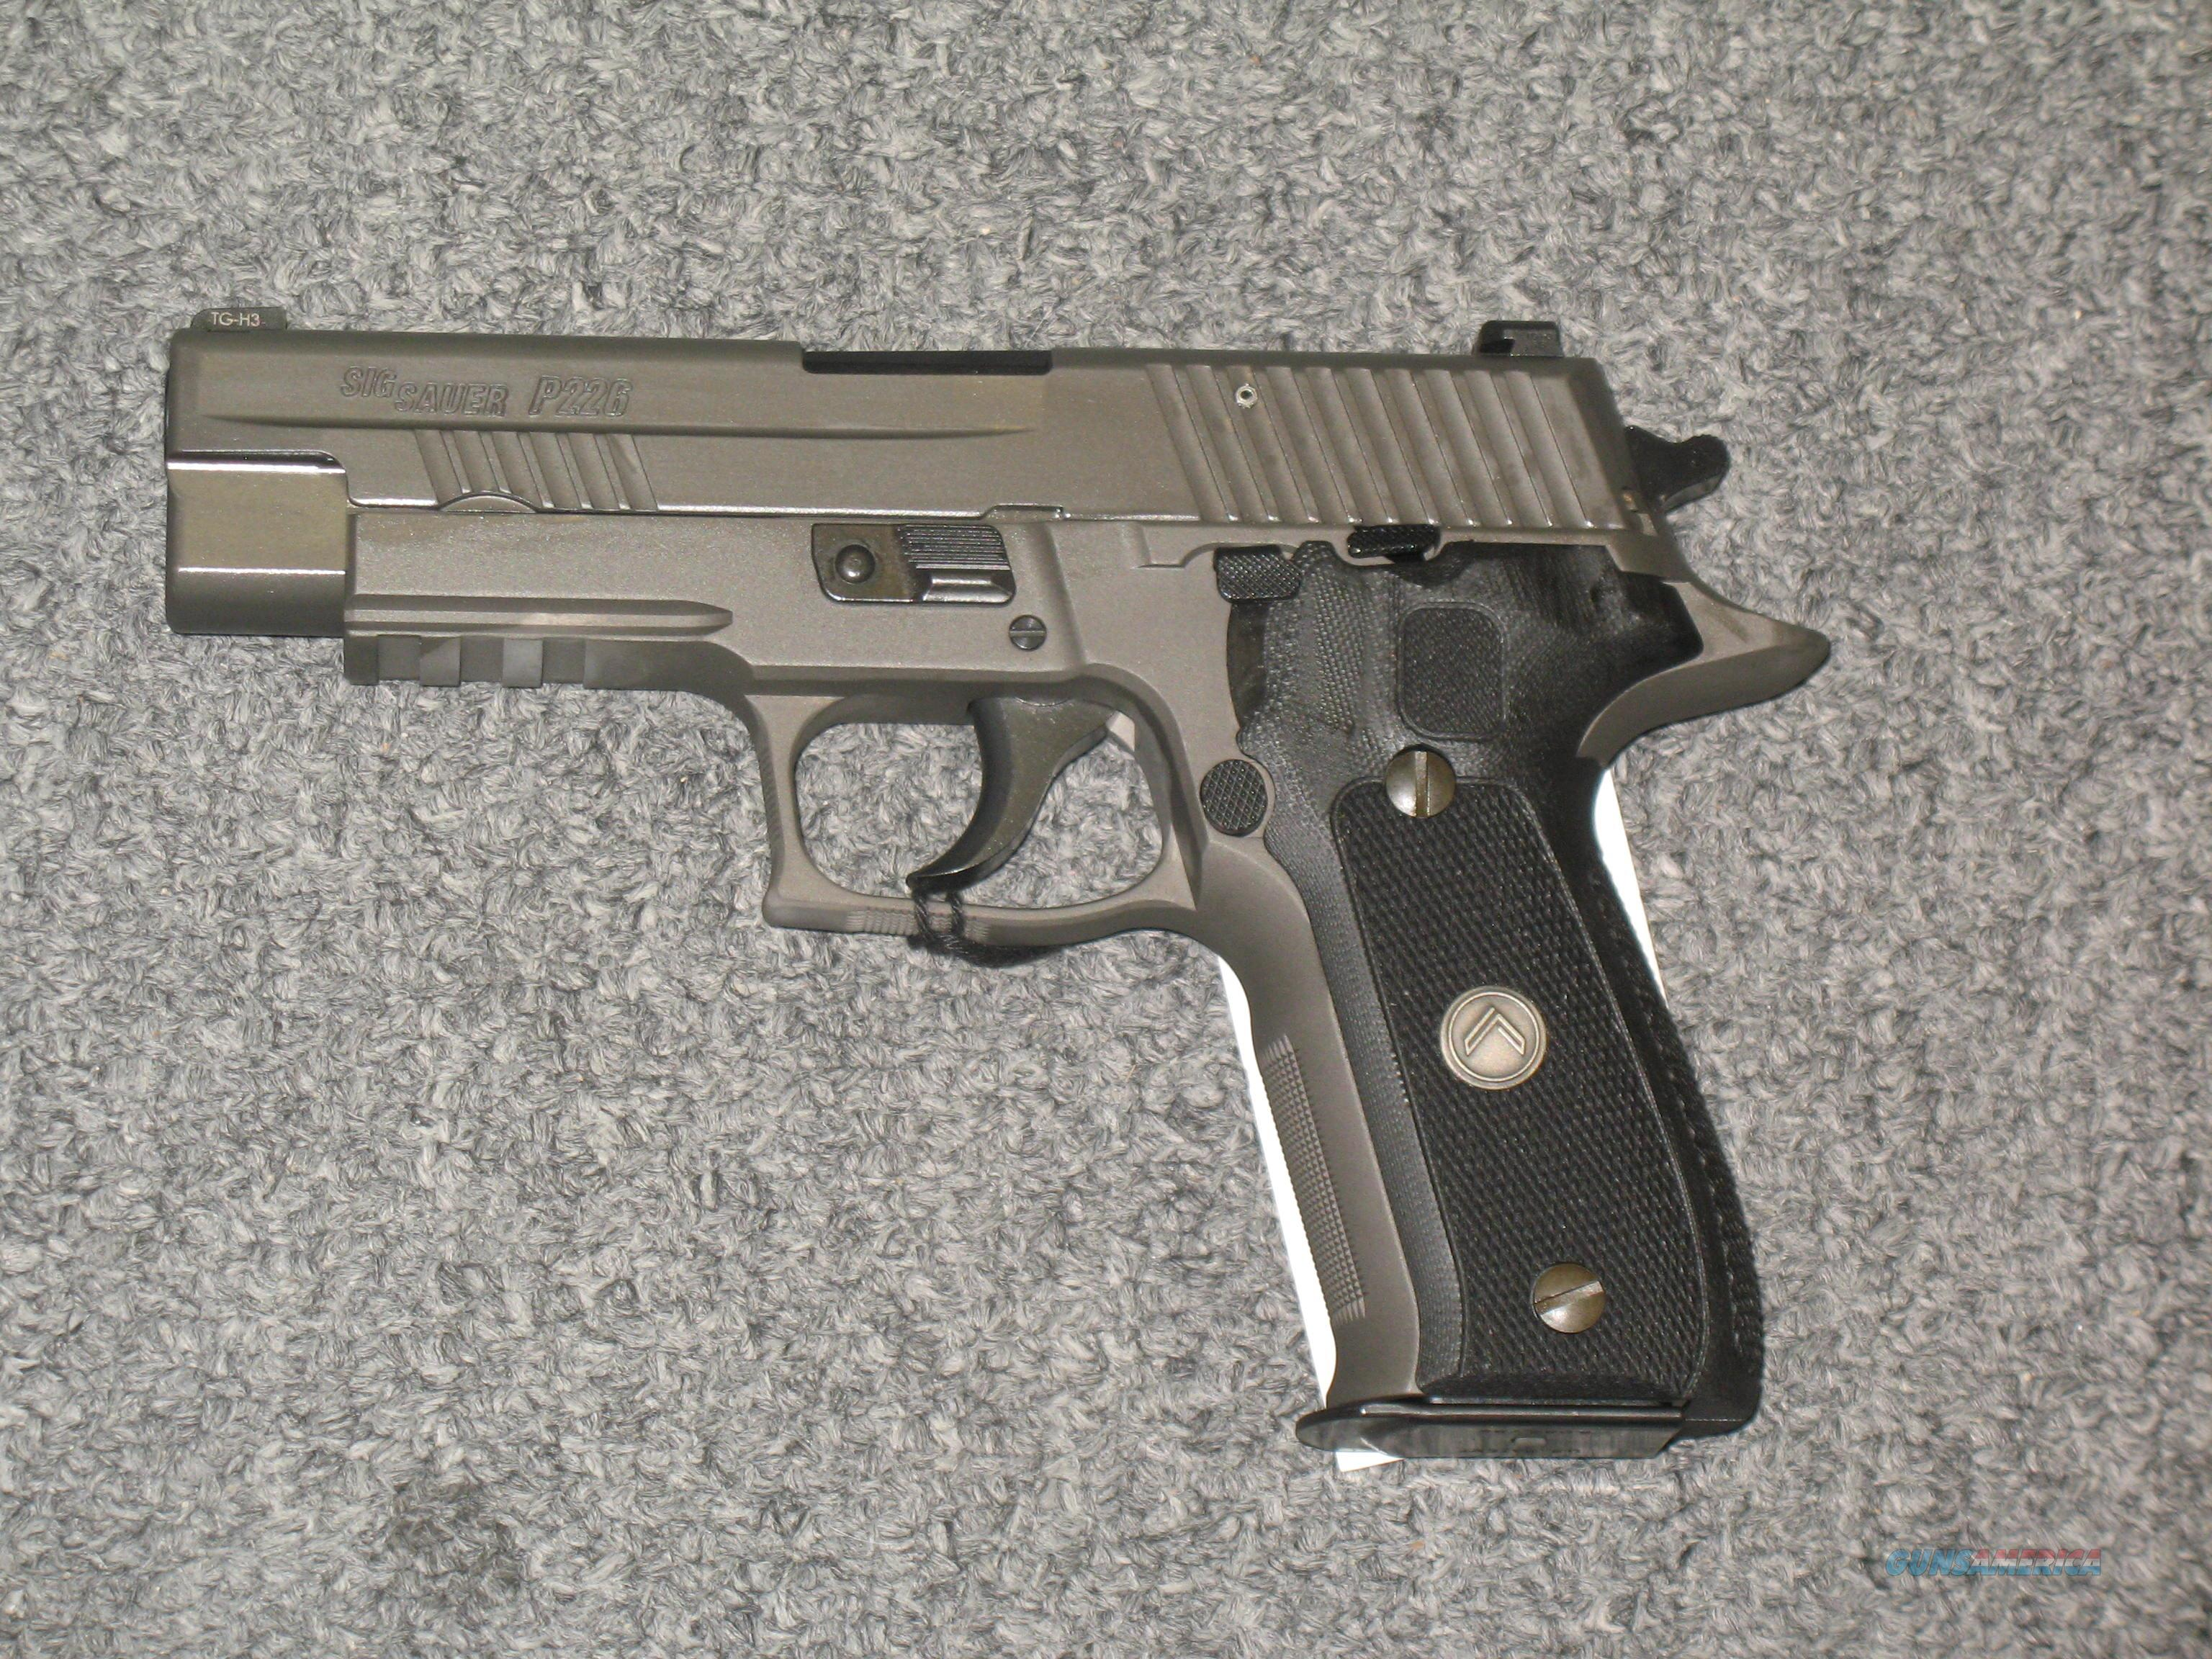 P226r LEGION  w/3  12 rd mags.  Guns > Pistols > Sig - Sauer/Sigarms Pistols > P226